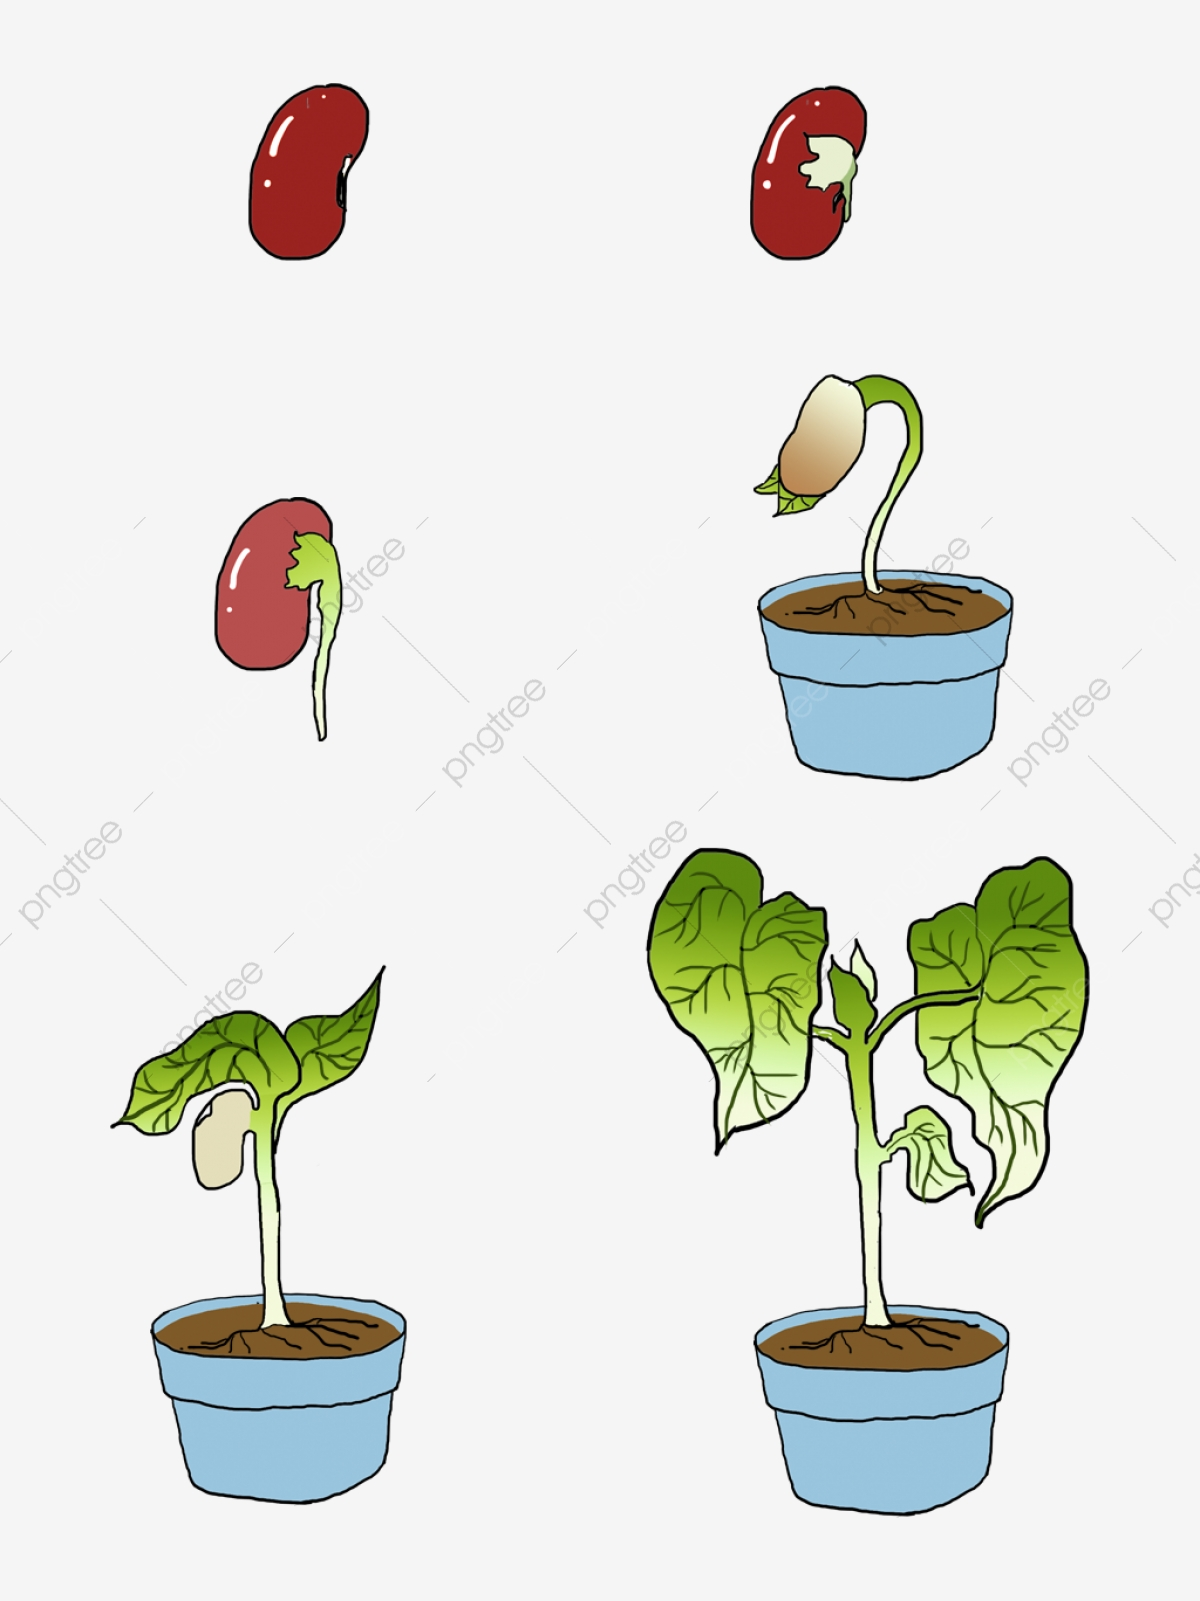 Hand Painted Plant Growth Process Red Bean Sprouting, Plant Growth.